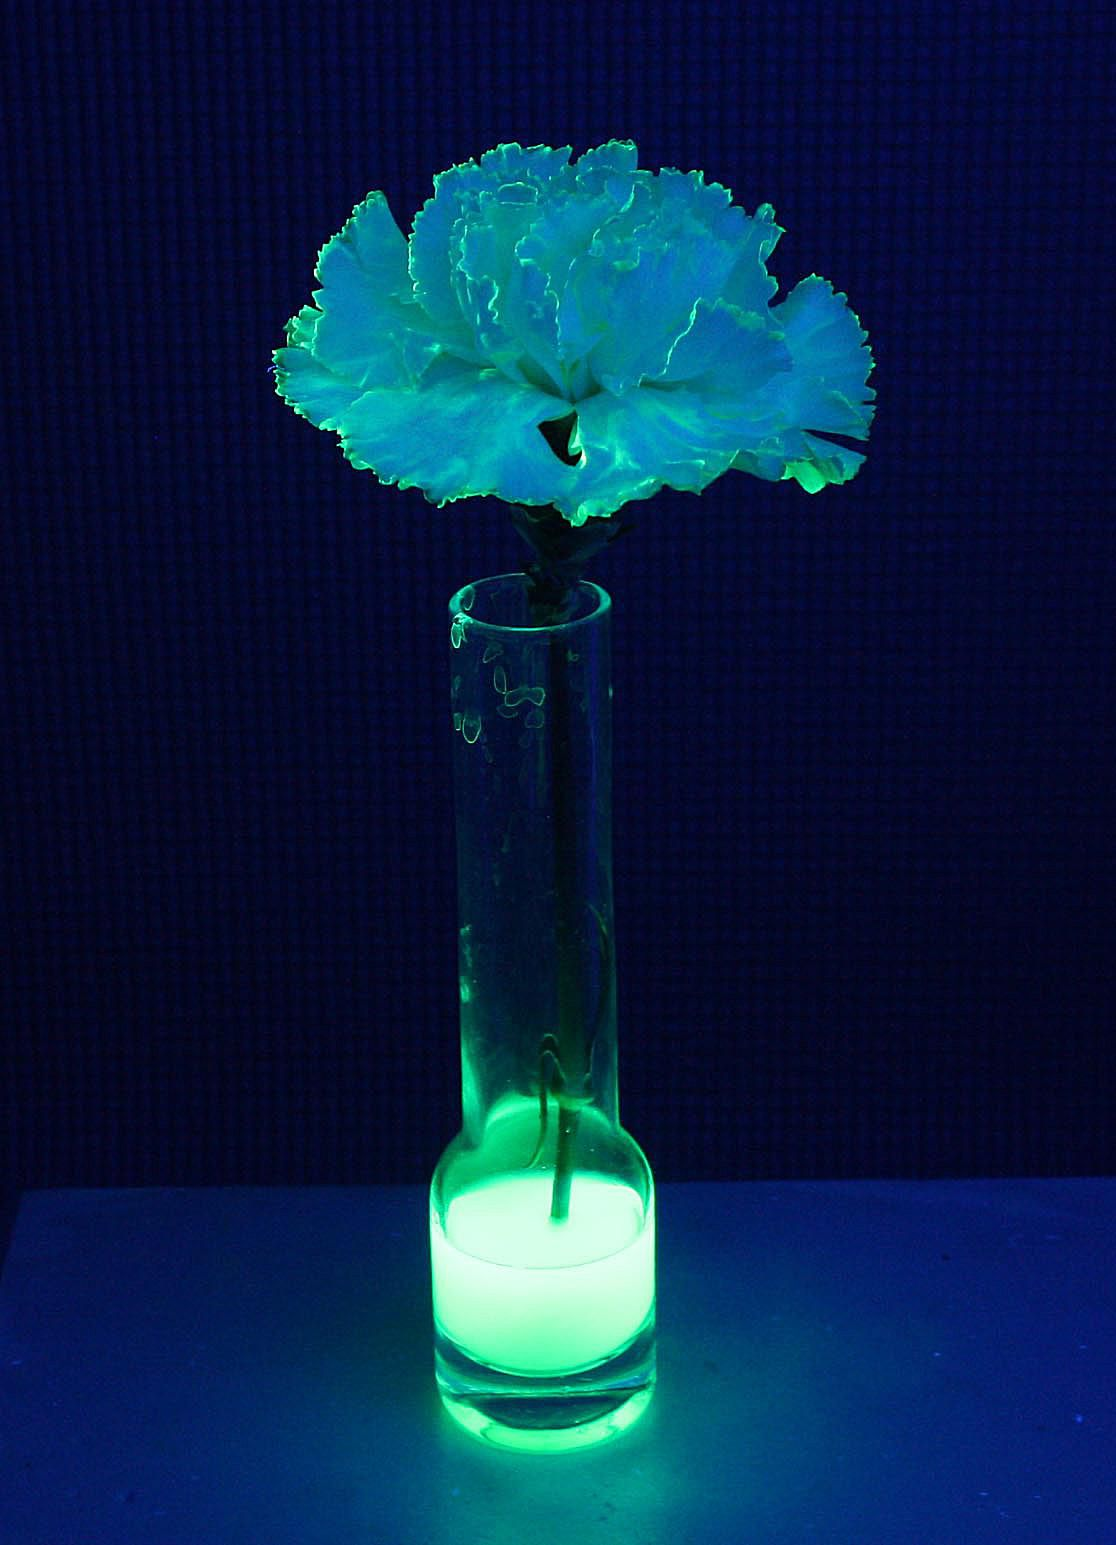 Tonic water, which contains quinine, was used to impart a blue glow to this carnation.